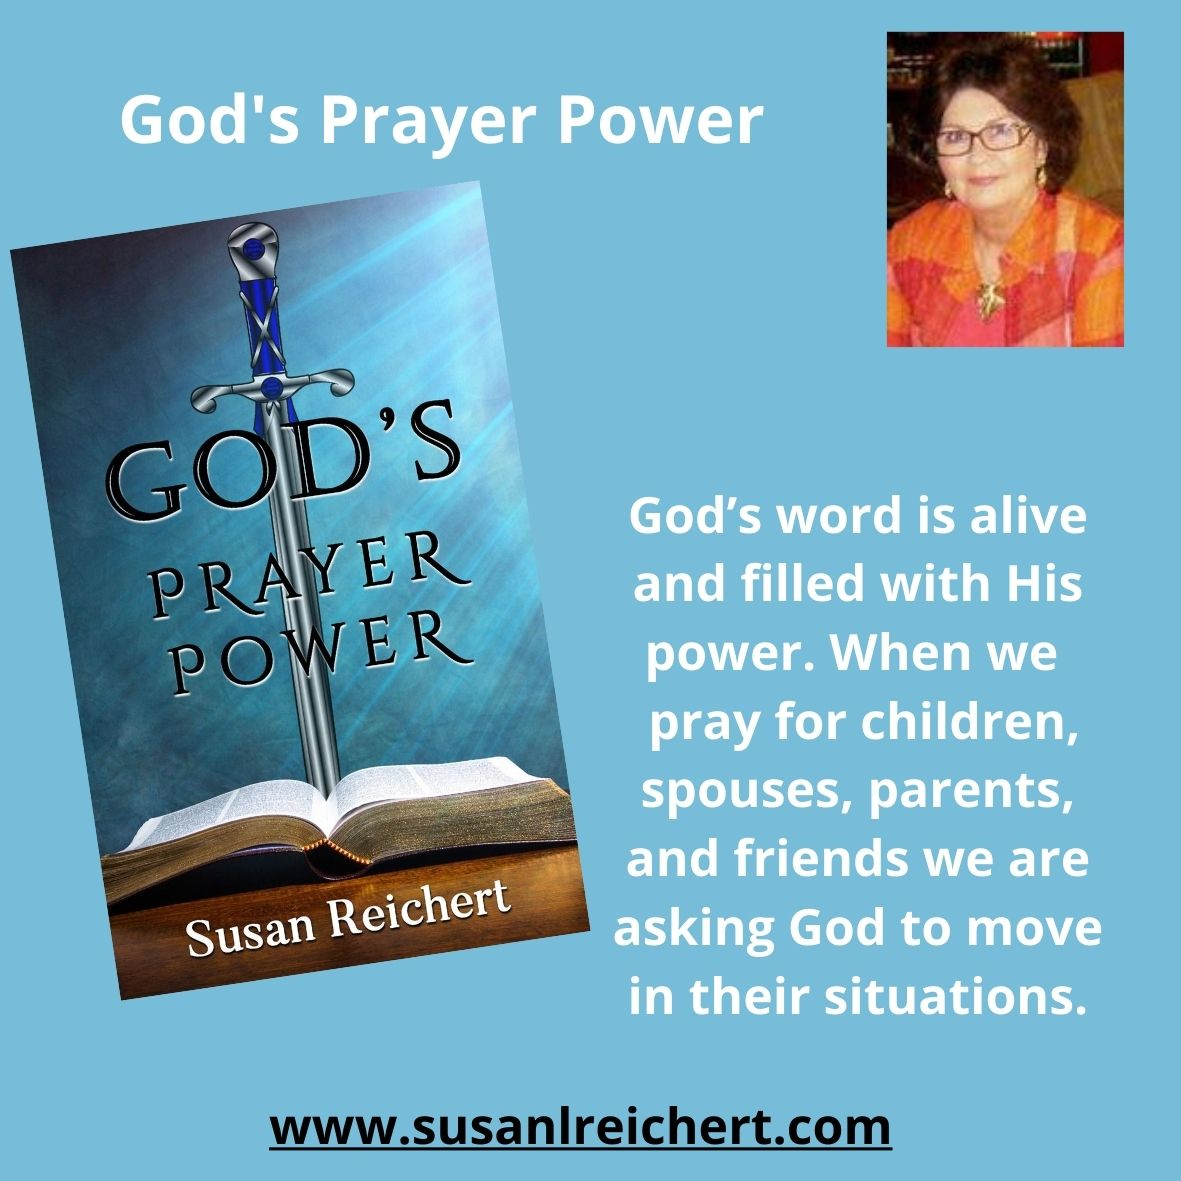 God's Prayer Power